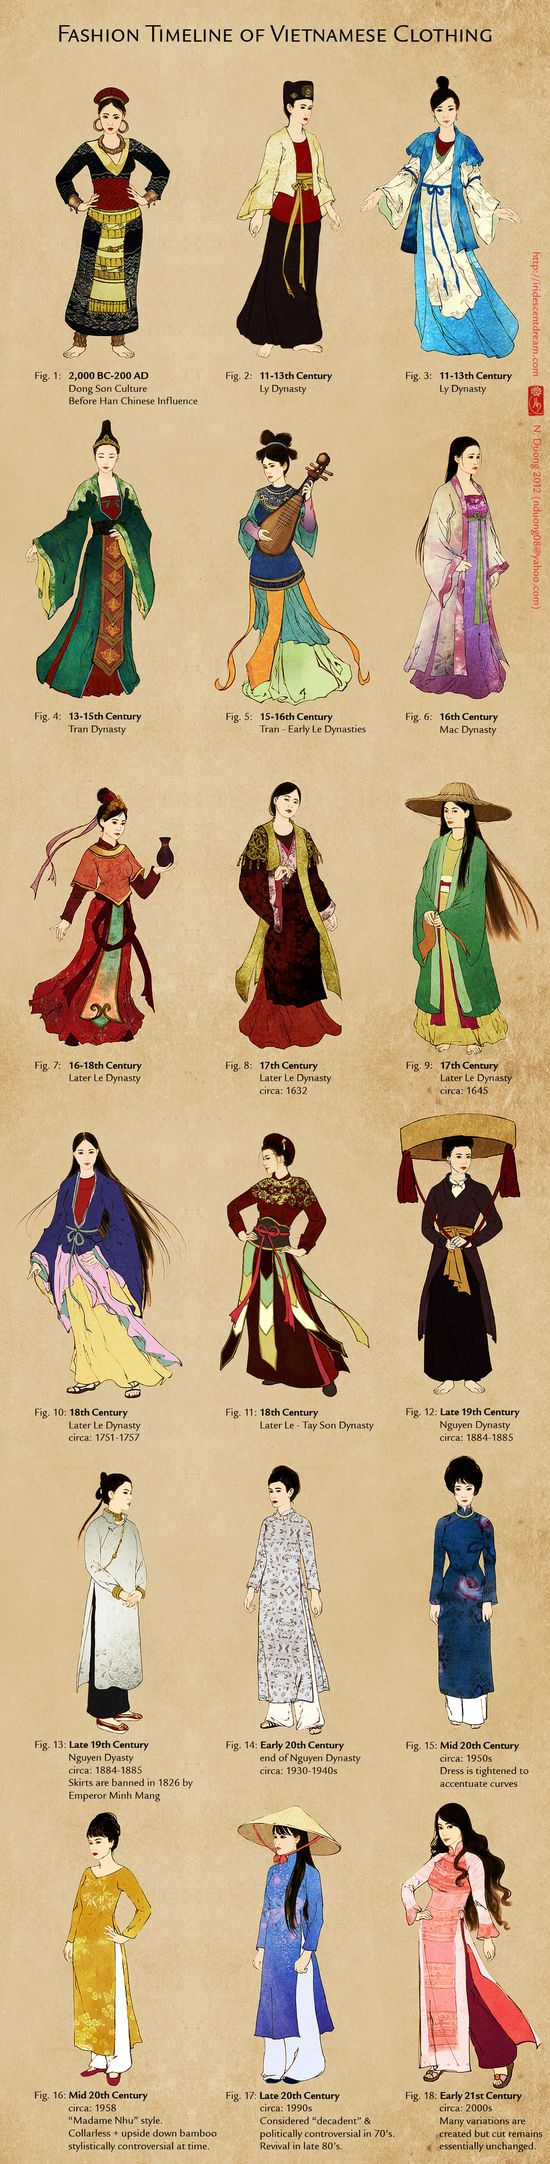 Evolution of Vietnamese Clothing